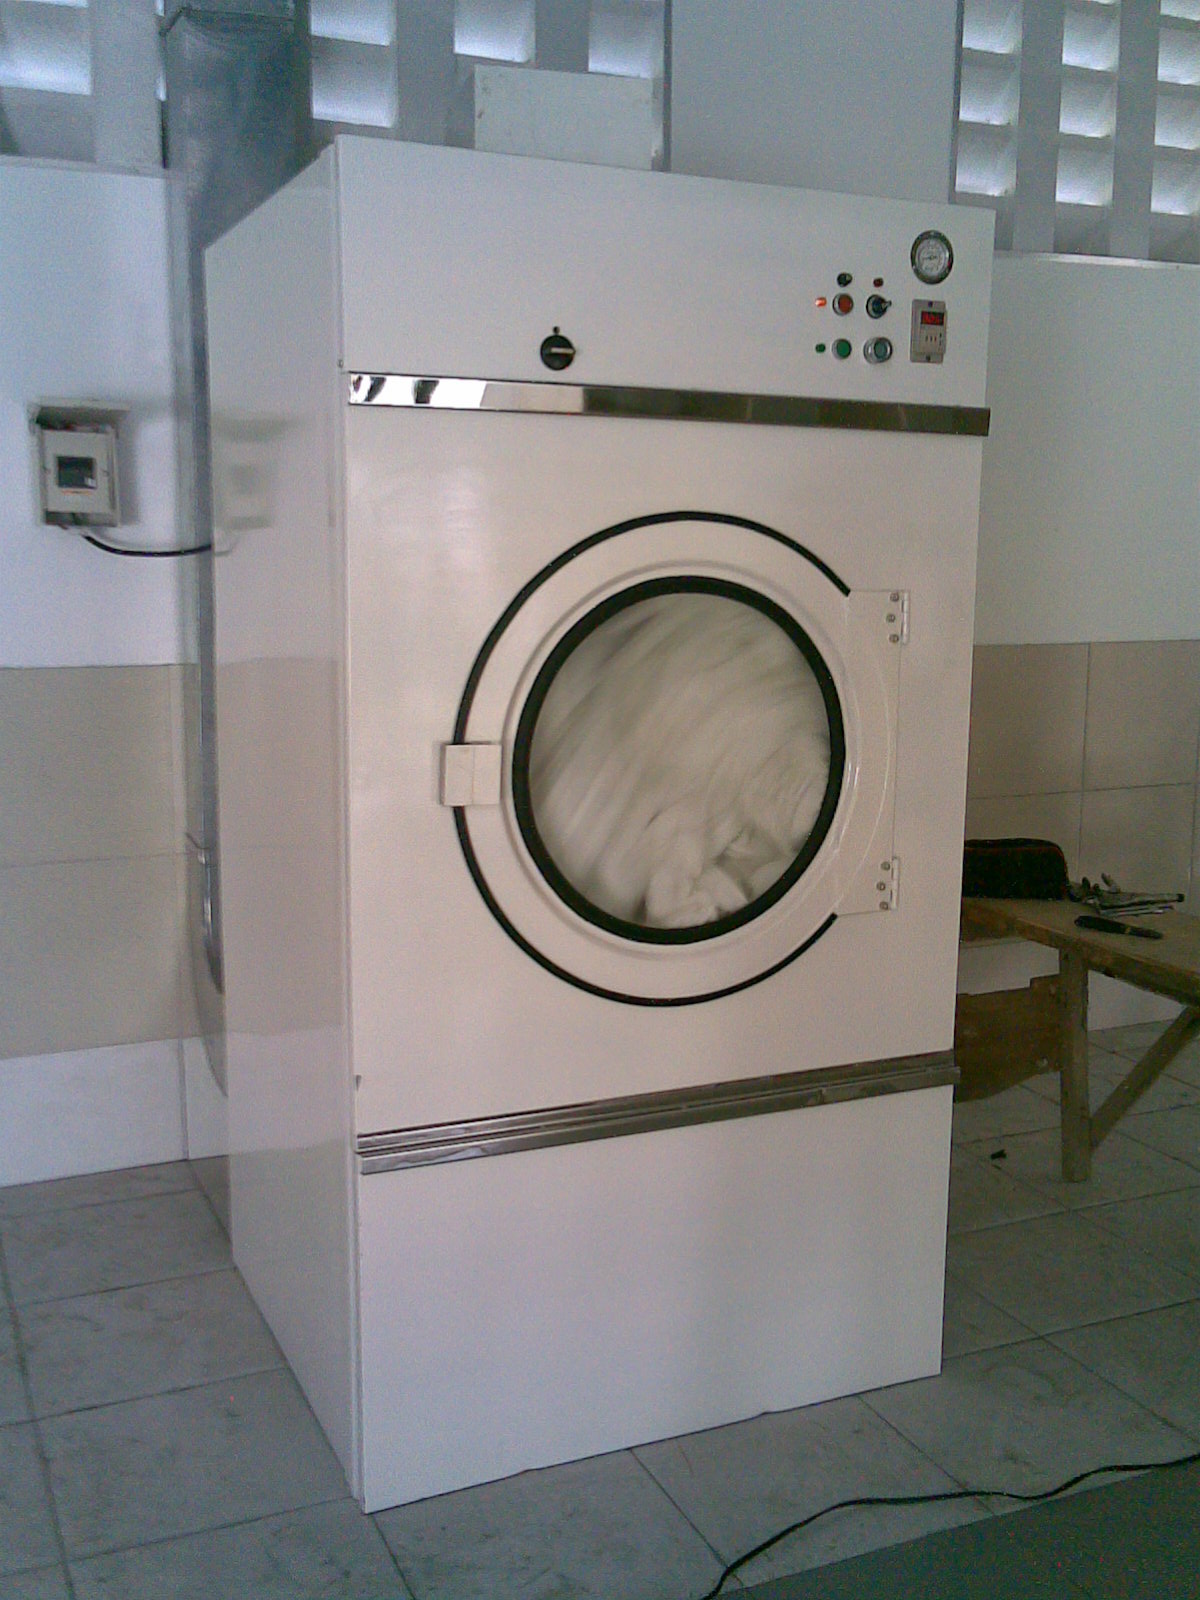 Dryer On A Tumbler ~ Fld tumbler dryer laundry machinery equipment business